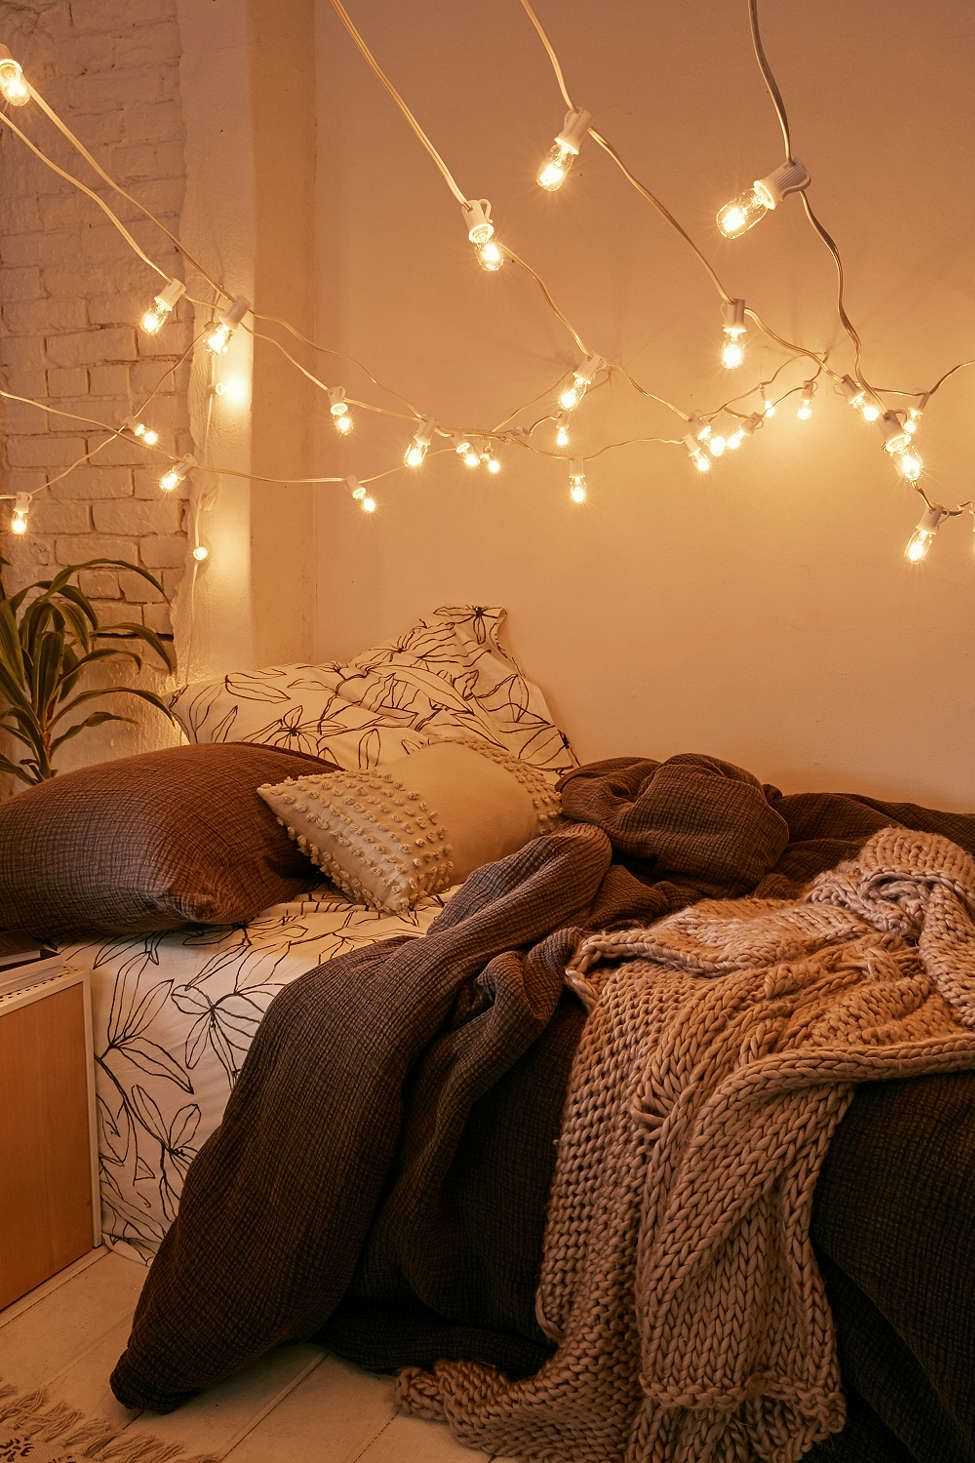 Dreamy Dorm Room Decor Mini Vintage Bulb String Lights Urban Outers